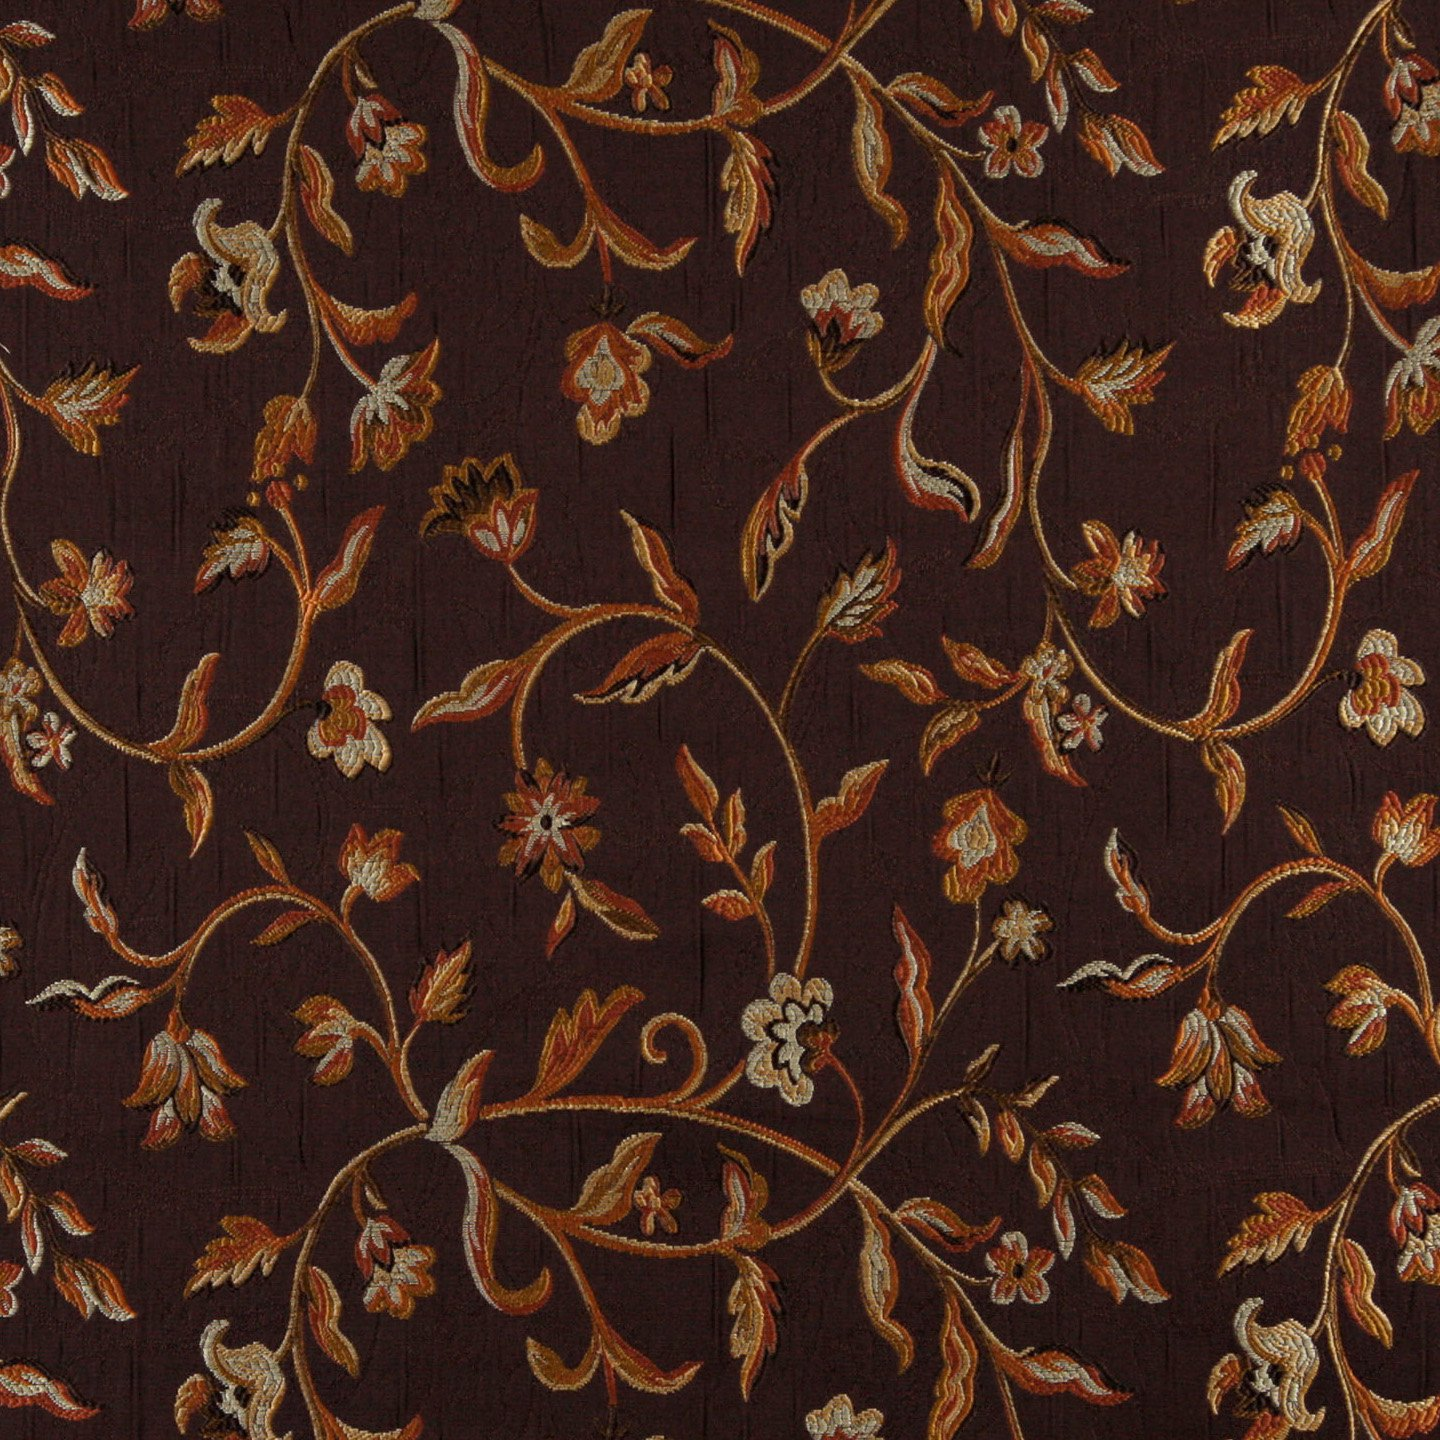 brocade sofa fabric floor level ikea 54 quot wide k0011b brown gold persimmon ivory embroidered